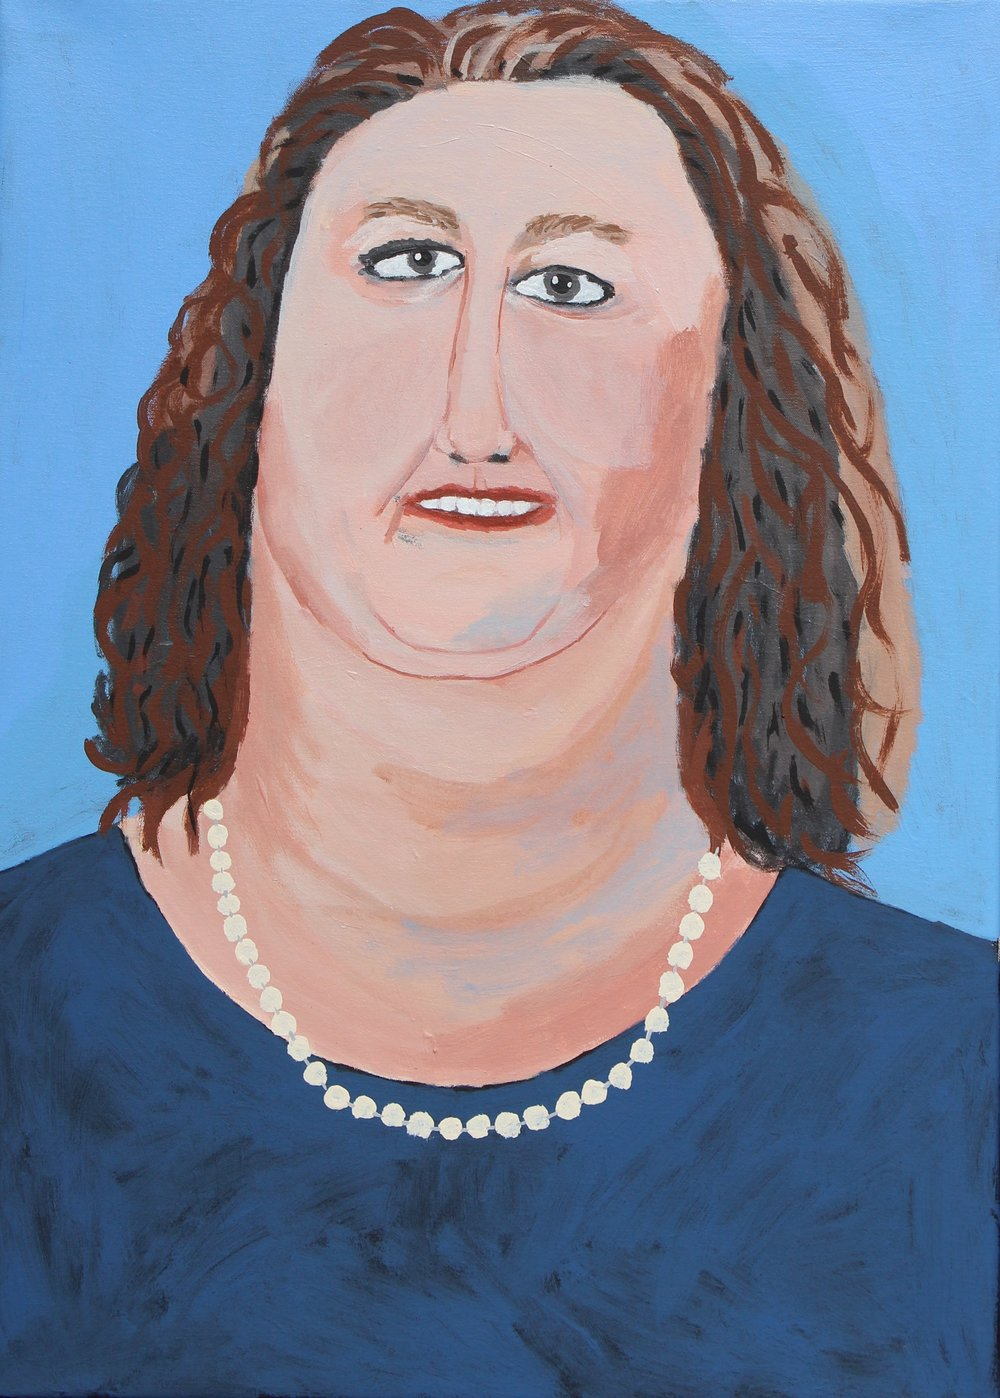 Vincent Namatijira,  The Richest (Gina Rinehart),  2017, acrylic on canvas, 91 x 67 cm. Courtesy of the artist, THIS IS NO FANTASY + dianne tanzer gallery and Iwantja Arts.